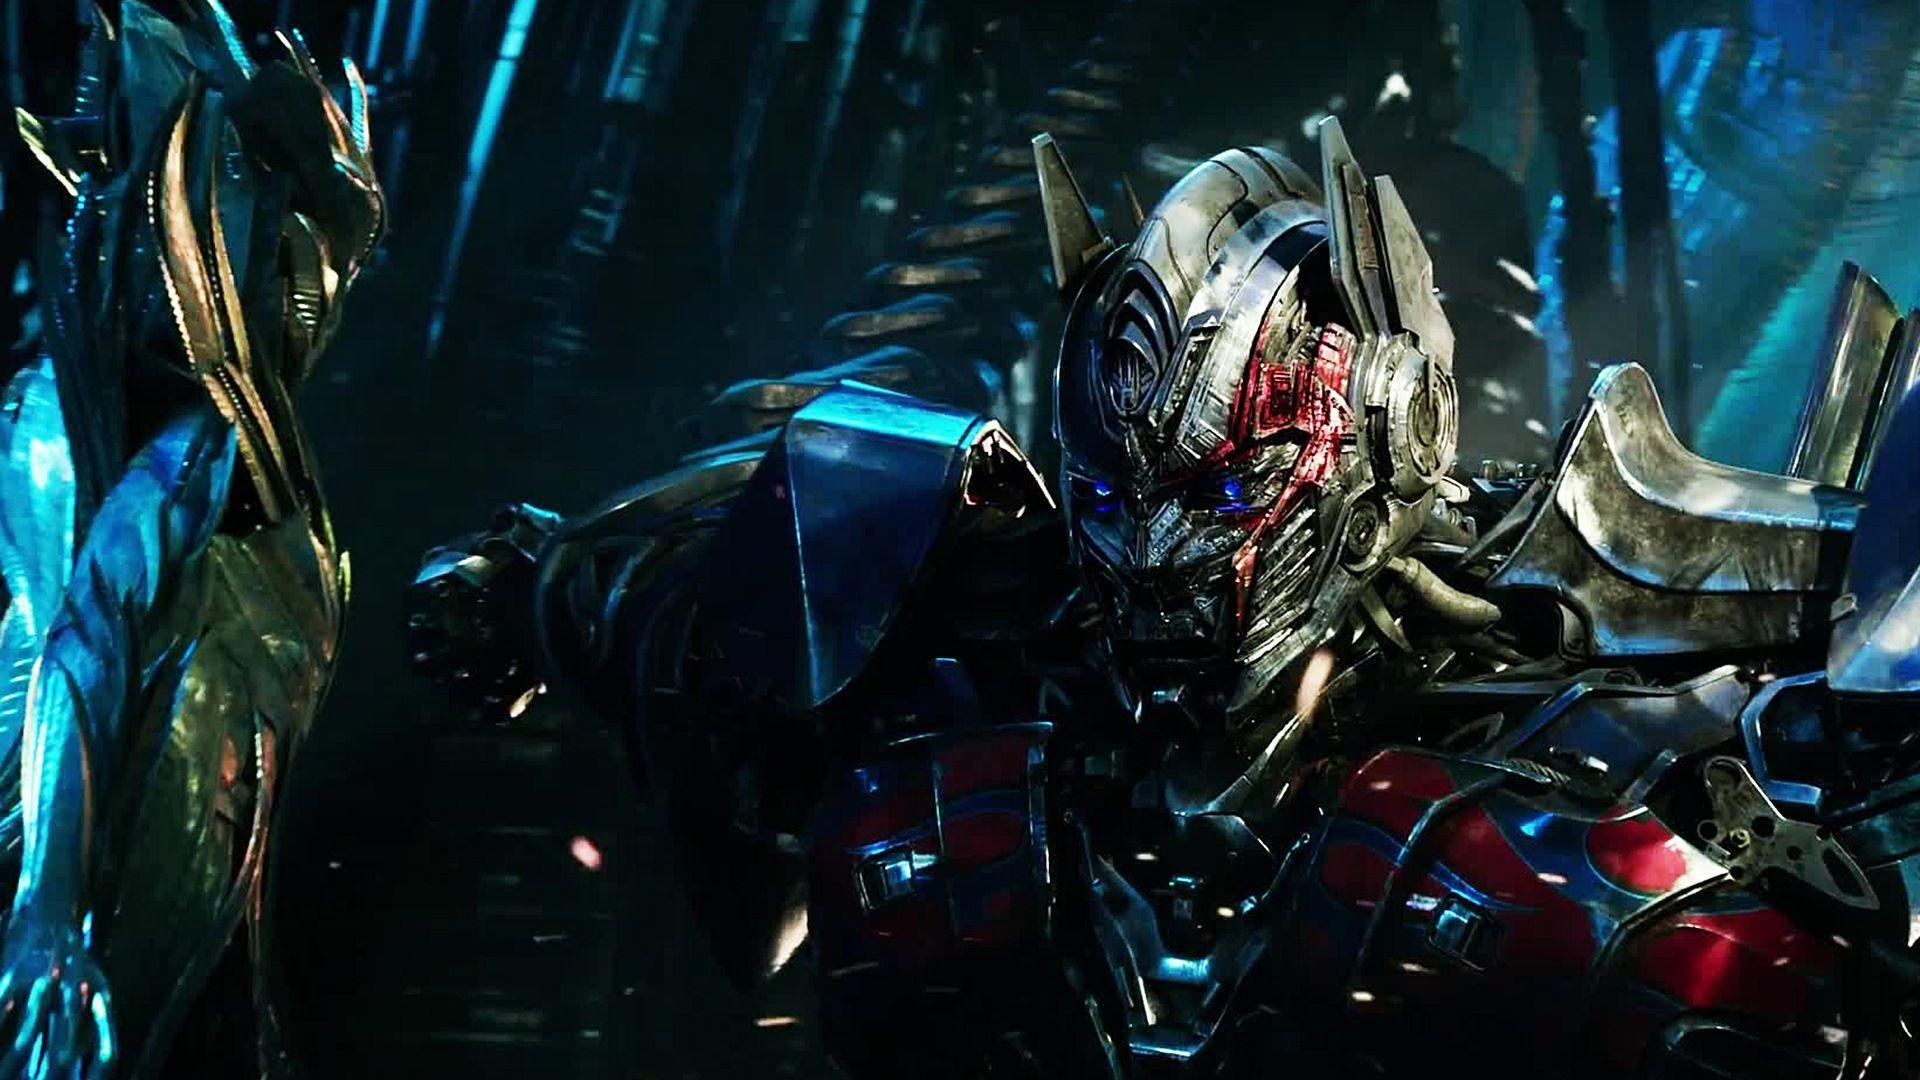 Transformers Wallpapers HD Backgrounds, Image, Pics, Photos Free